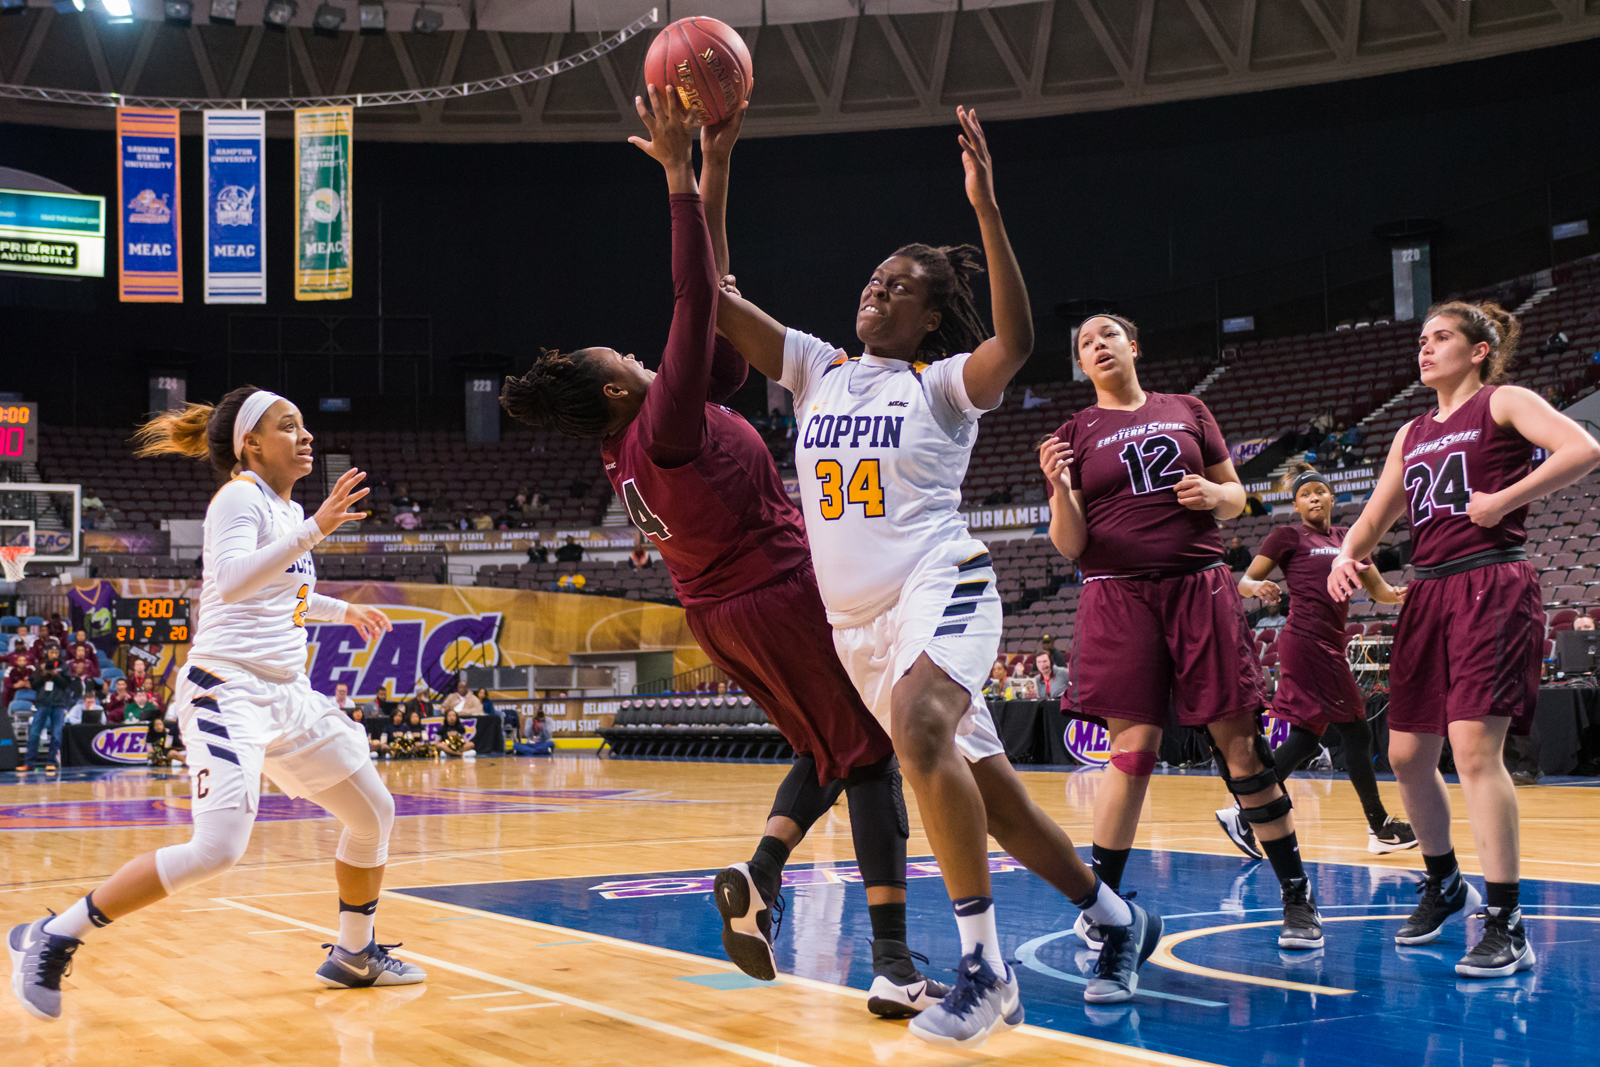 Maryland Eastern Shore Lady Hawks forward Shauntesha Bryant (44) takes a shot against Coppin State Lady Eagles center Oluwaseun Adeniji (34) during the 2017 MEAC Tournament held at the Scope Arena in Norfolk, VA. Maryland Eastern Shore defeated Coppin State 62-59.